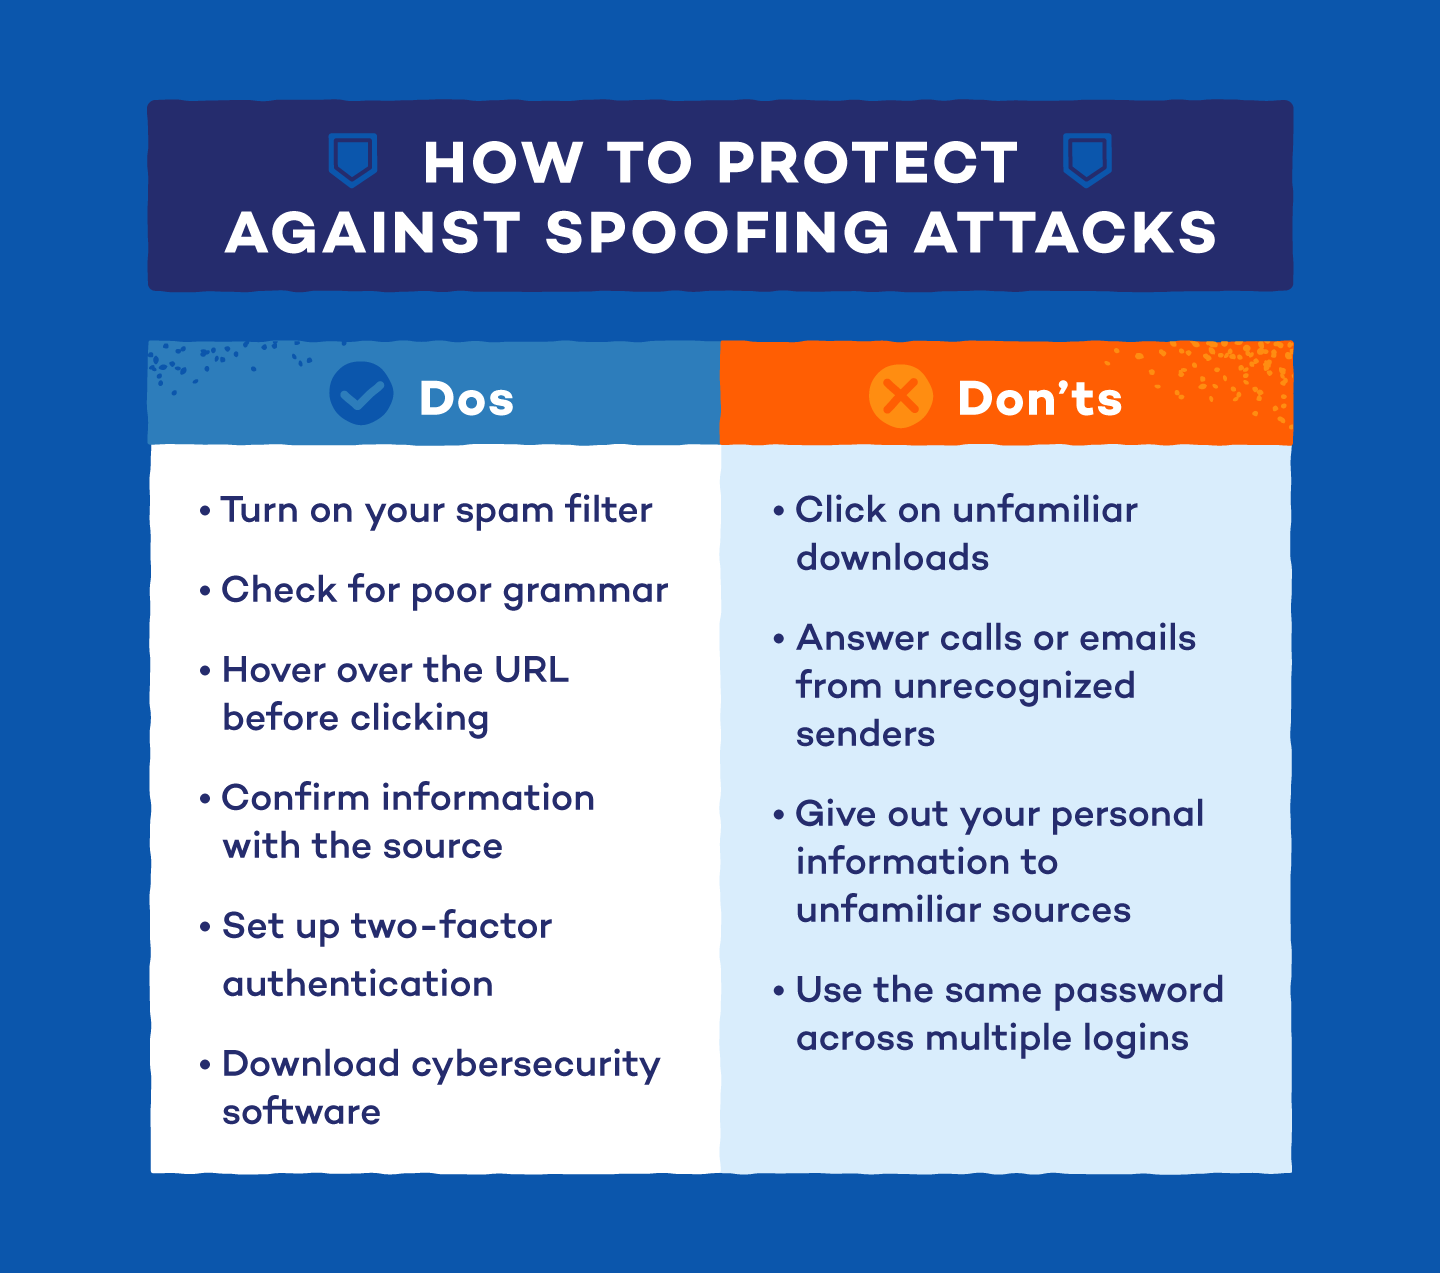 how-to-protect-against-spoofing-attacks-dos-and-donts